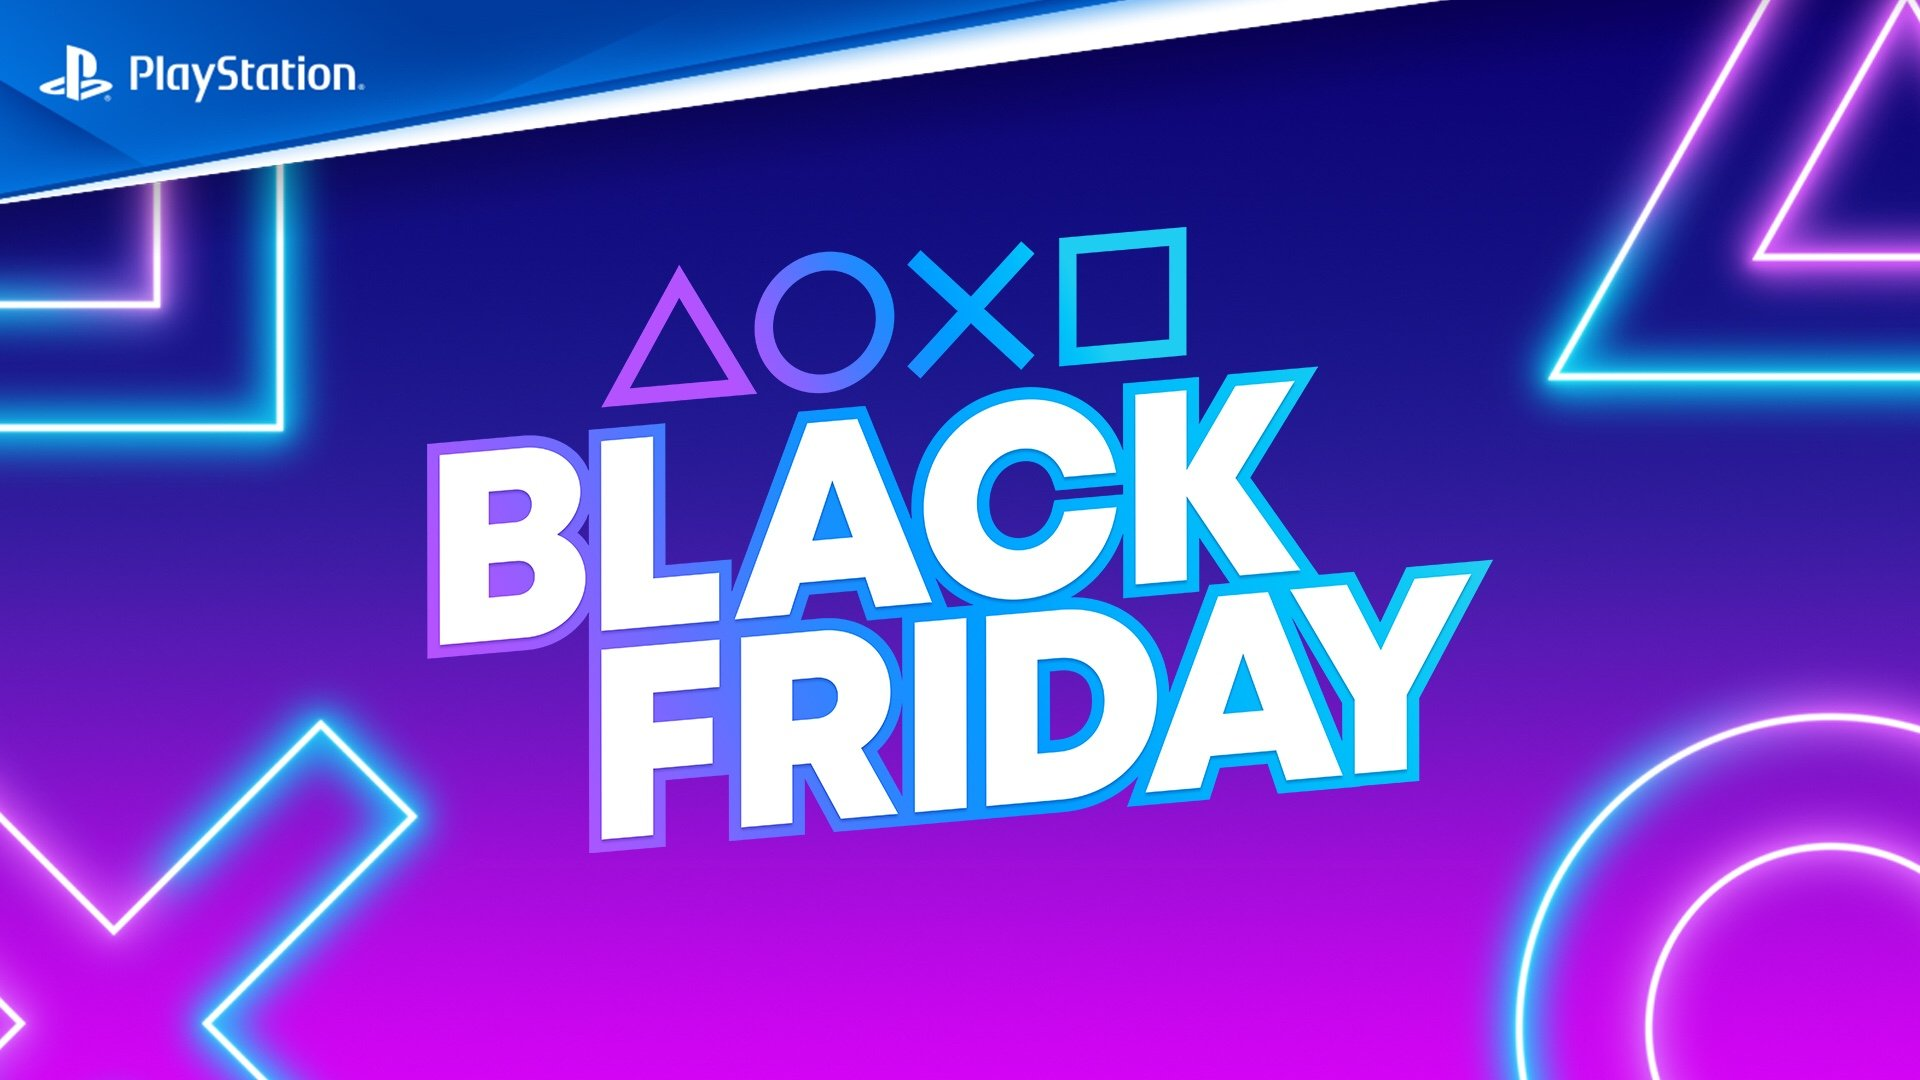 Valanga di promozioni targate PlayStation in occasione del Black Friday